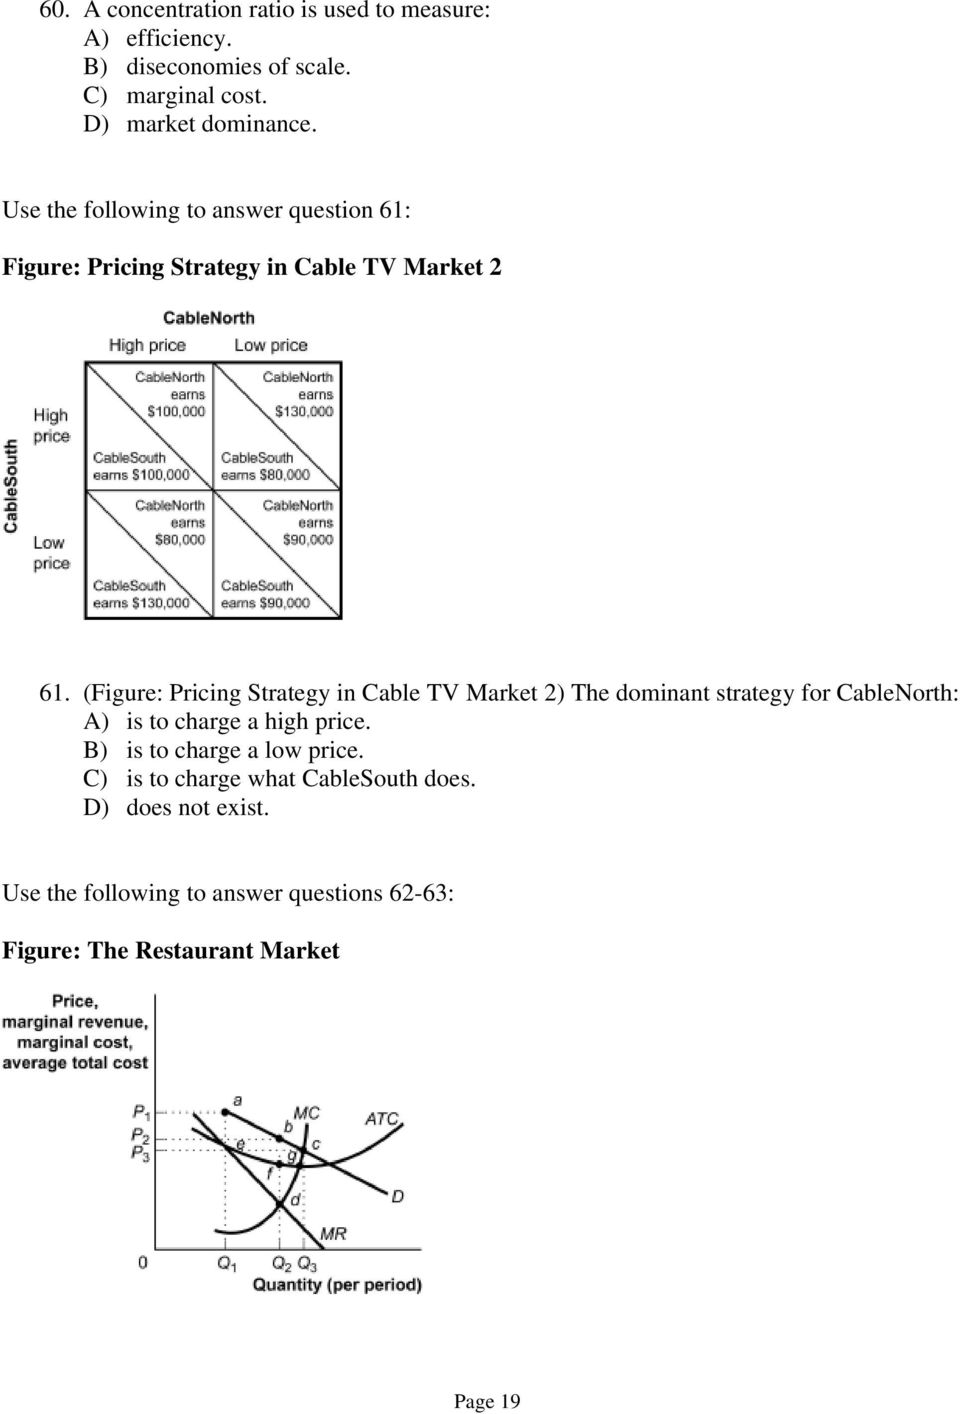 (Figure: Pricing Strategy in Cable TV Market 2) The dominant strategy for CableNorth: A) is to charge a high price.